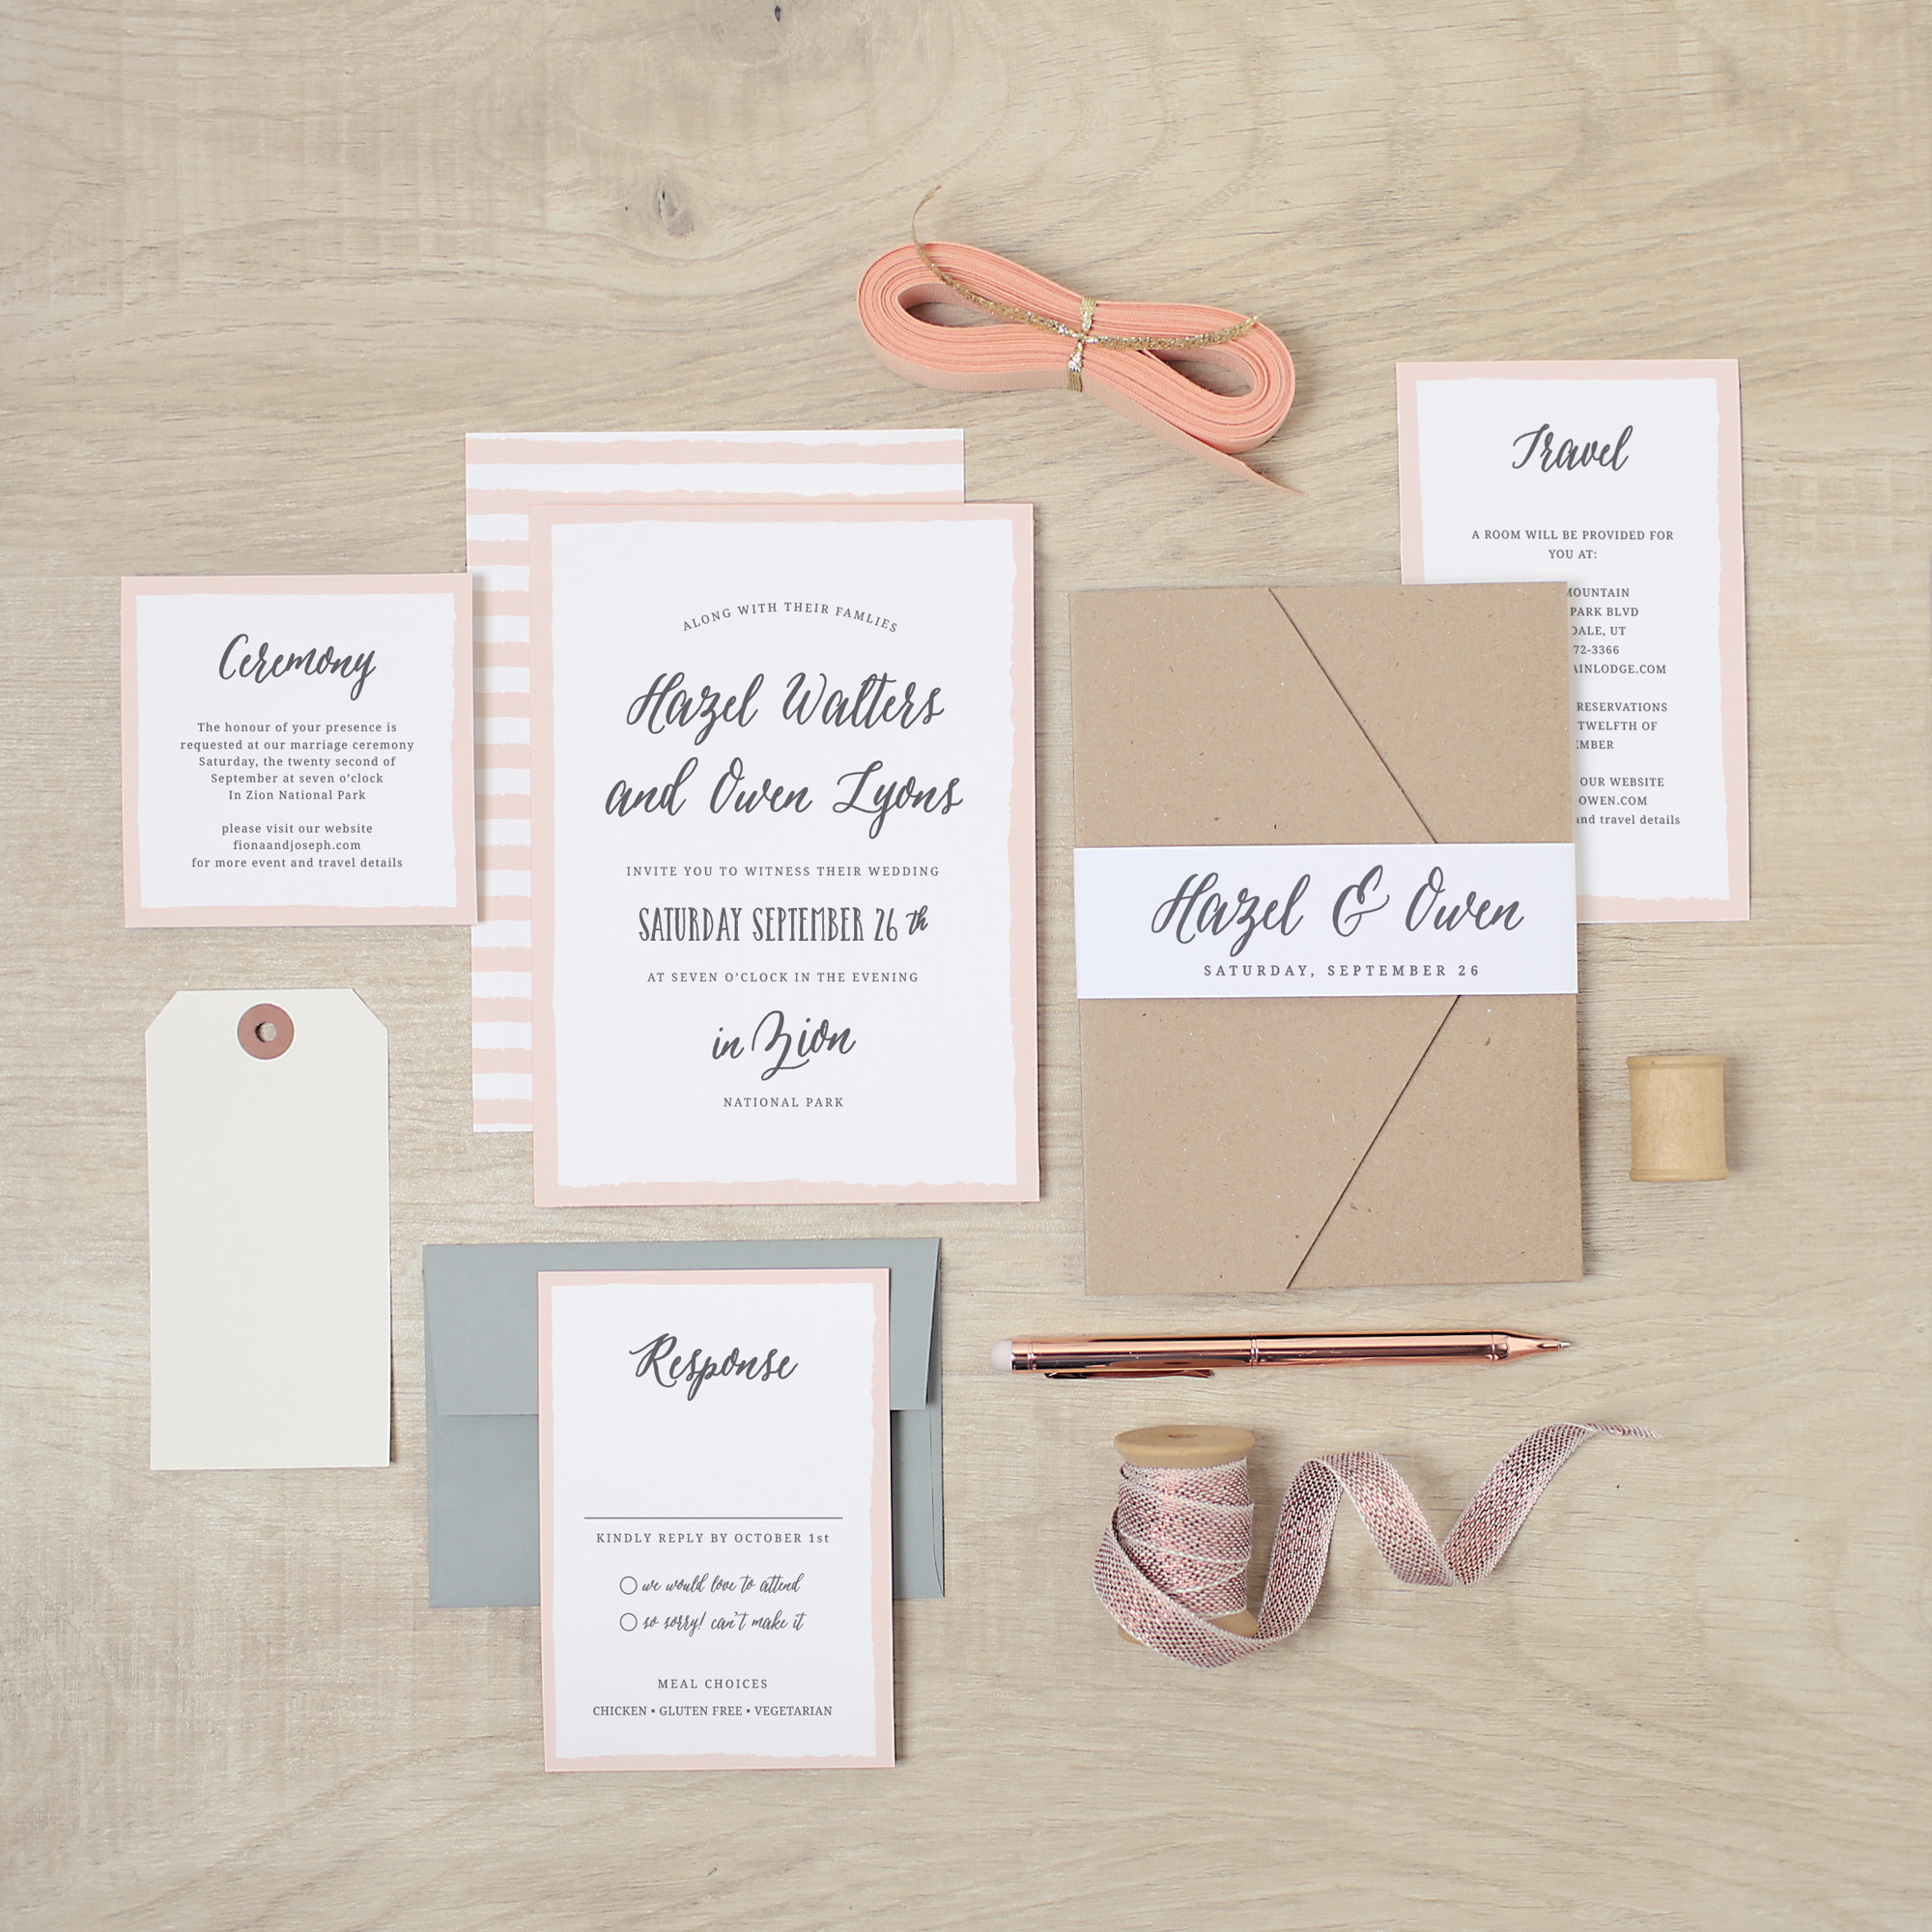 styled product shoot by basic invite bridestory com